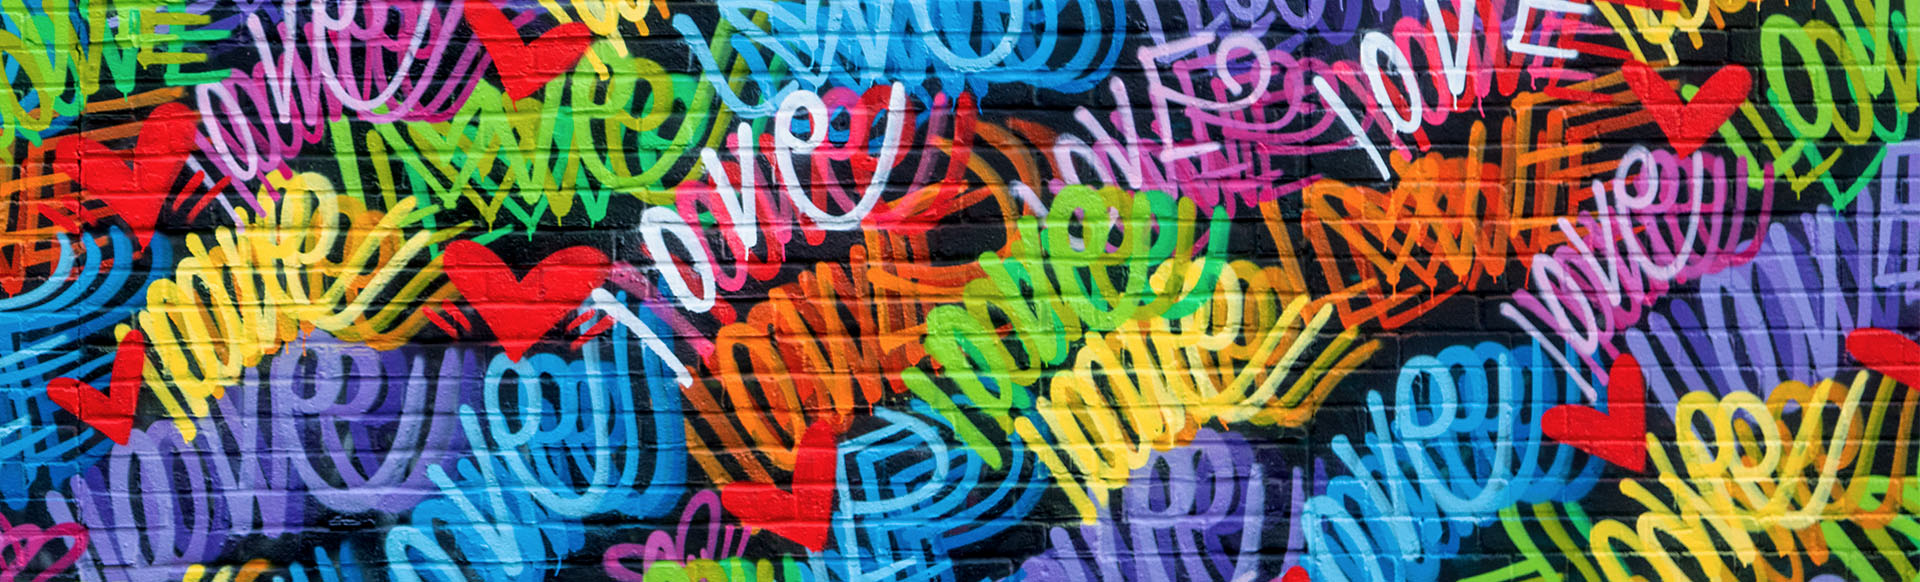 Close up of street art in Shoreditch featuring spray painted hearts and the word love in different colours.